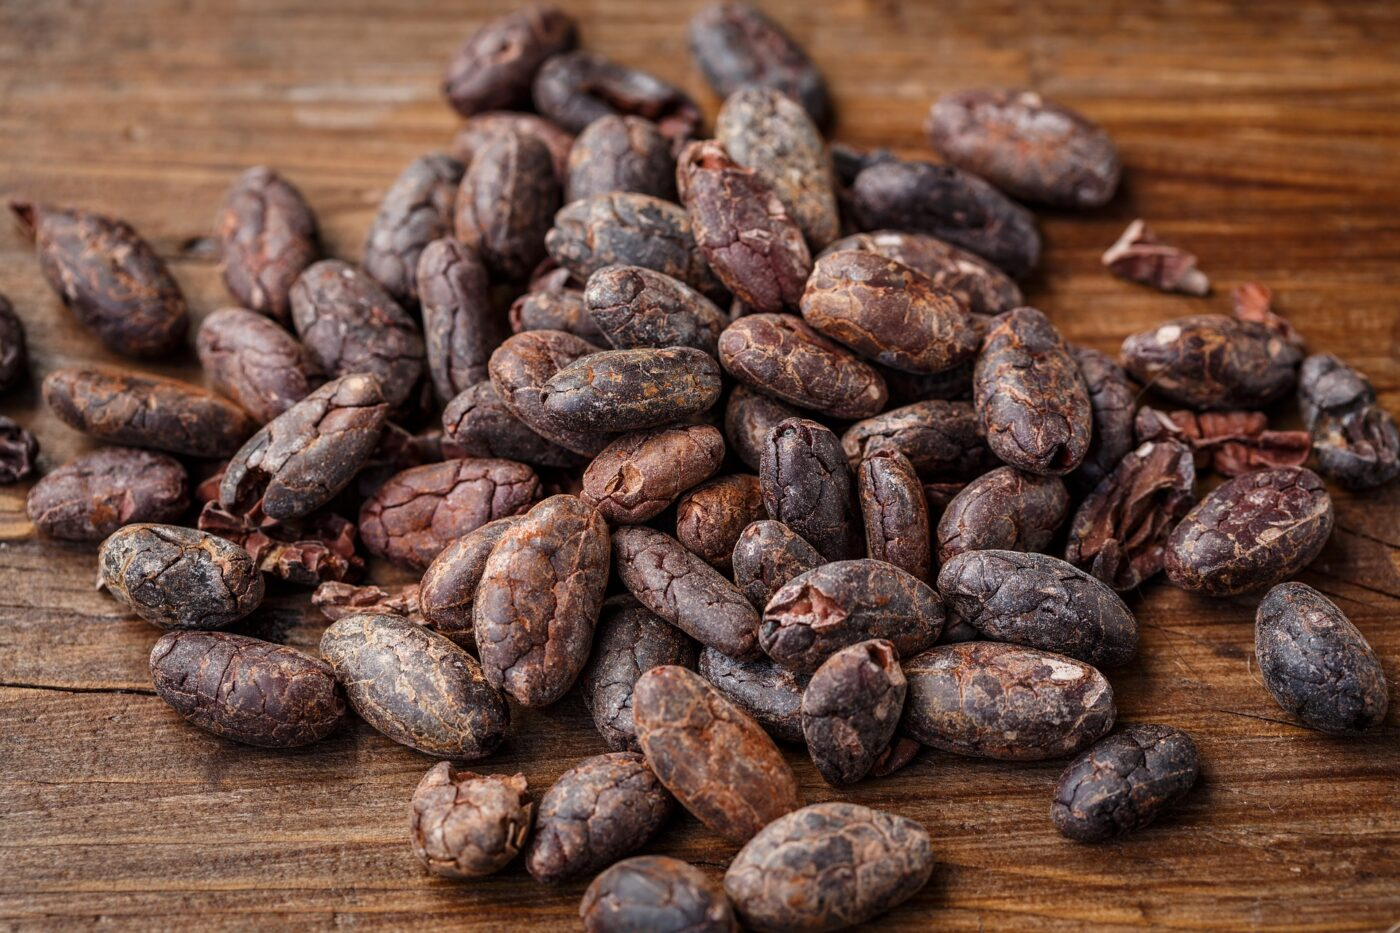 What are cocoa nibs and what can I do with them?